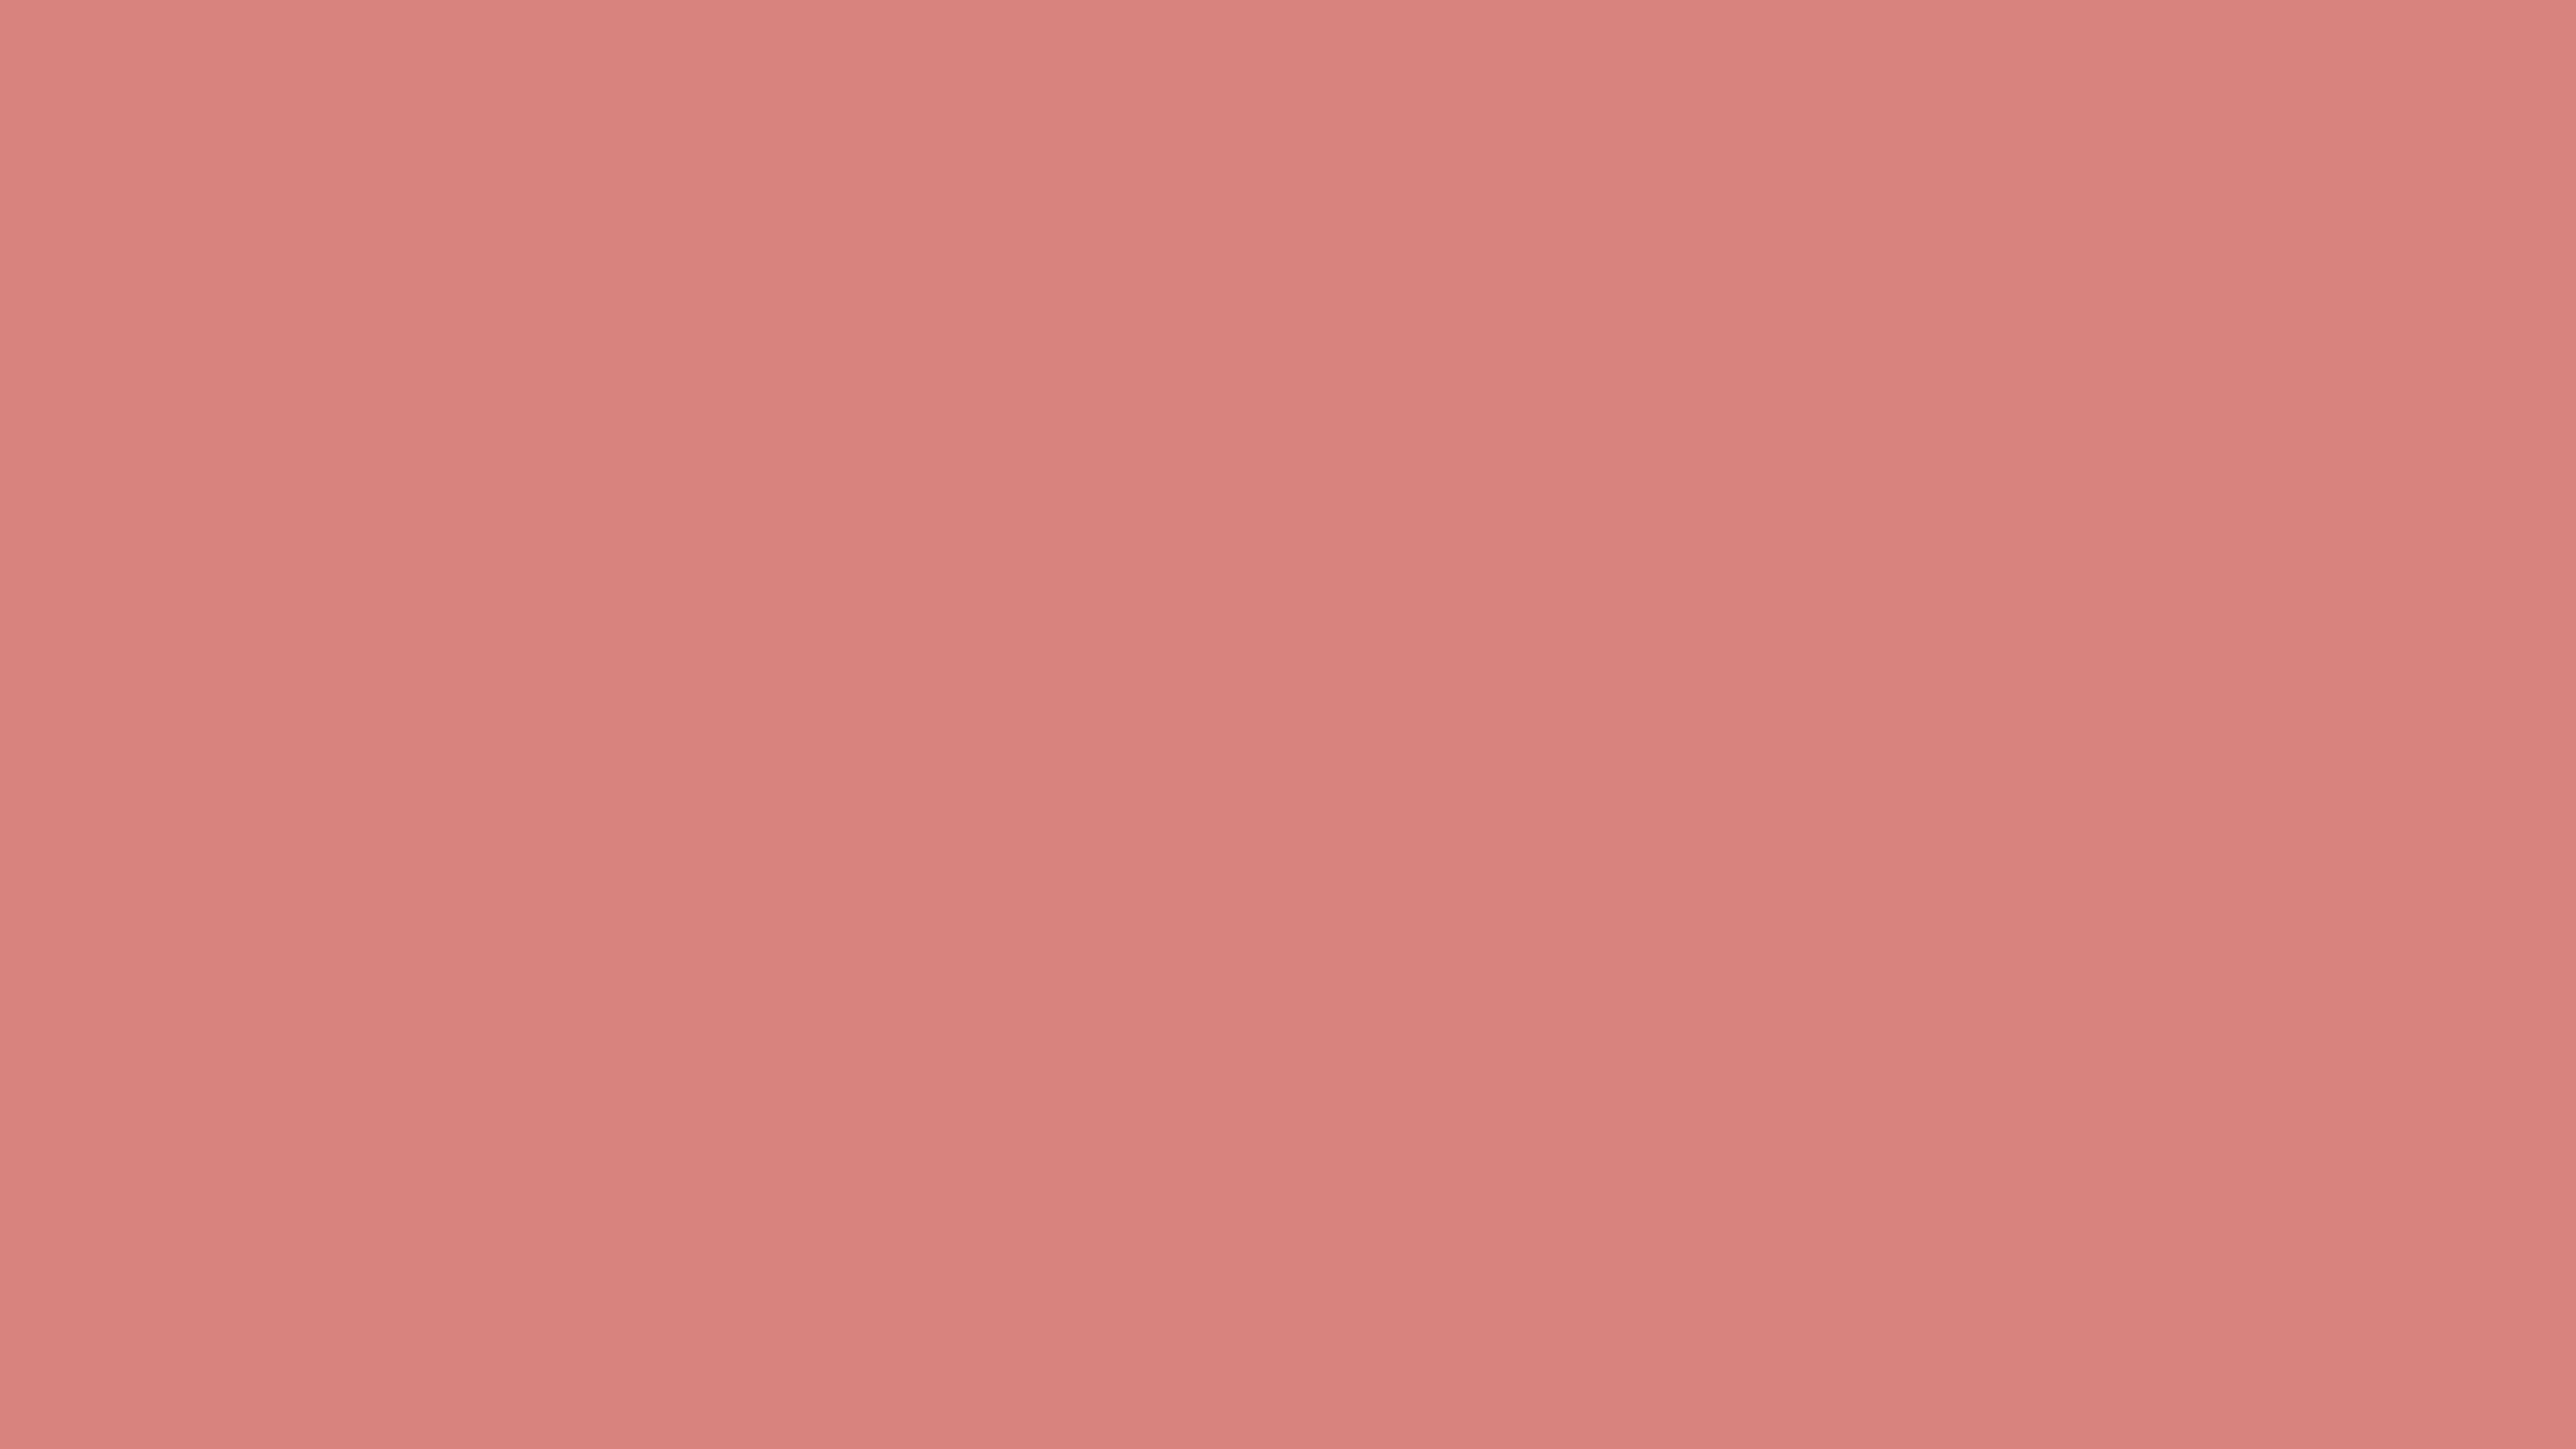 3840x2160 New York Pink Solid Color Background